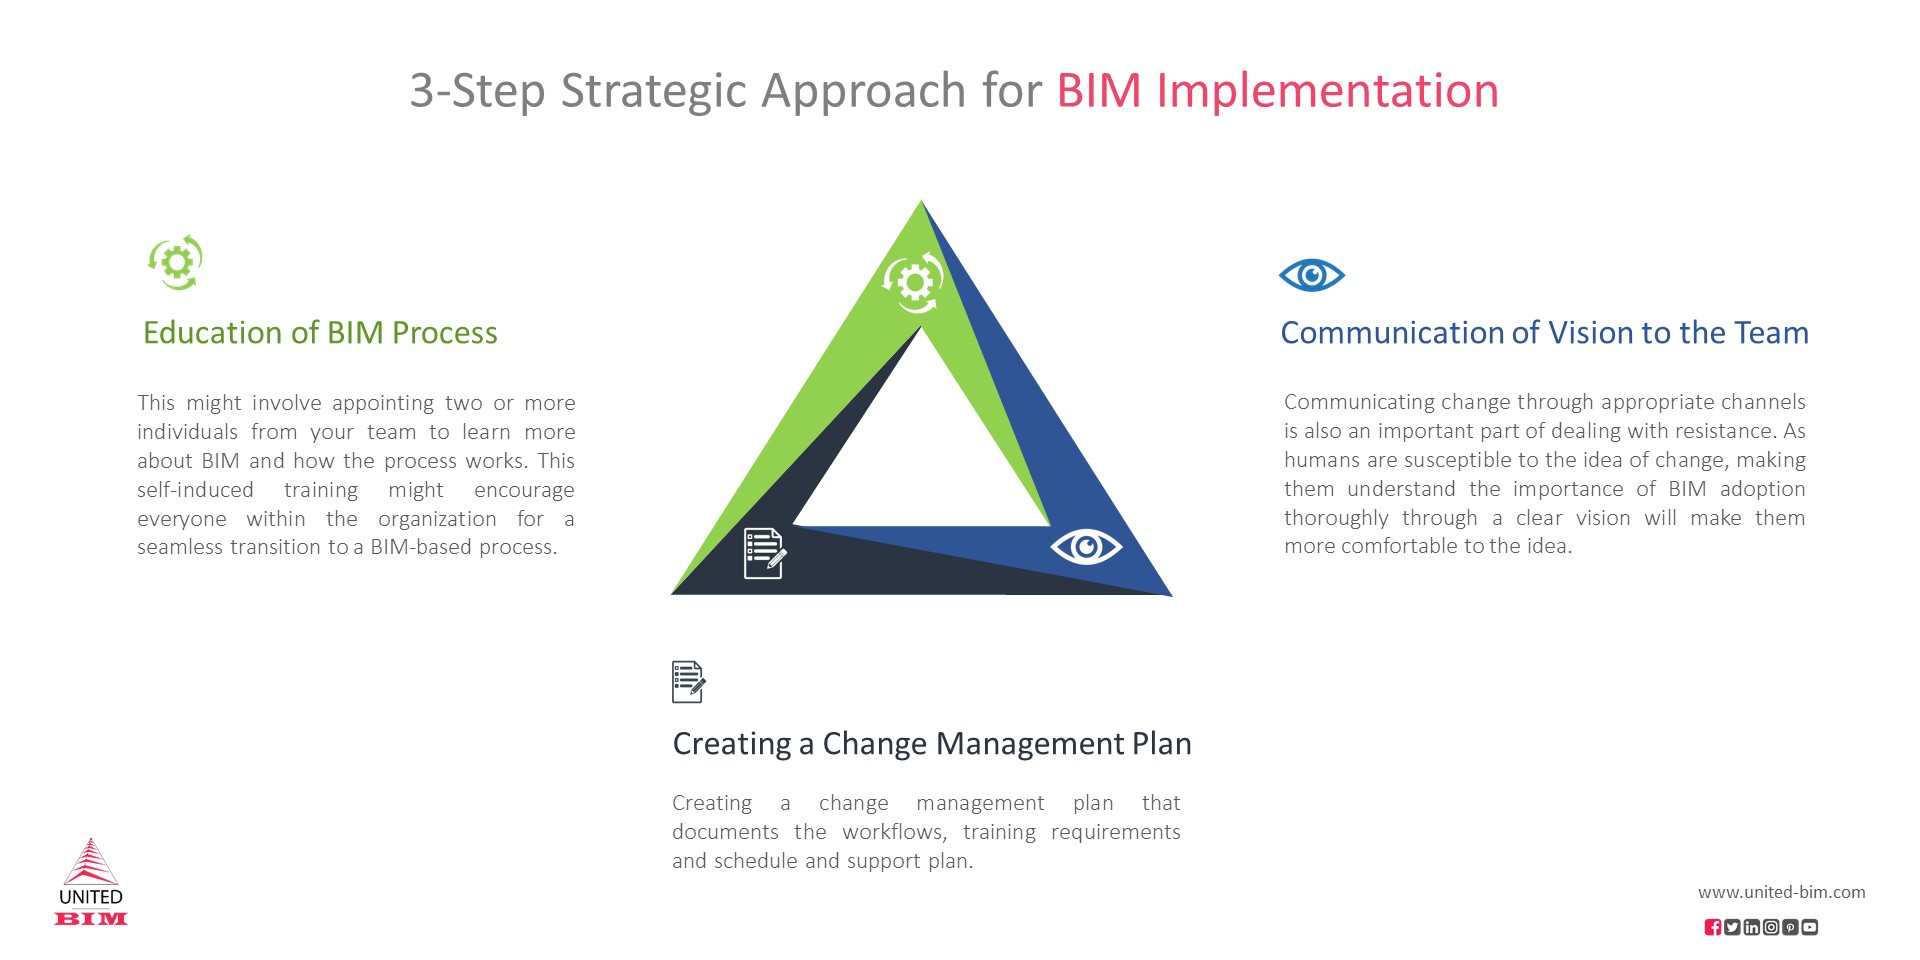 3-Step Strategic Approach for BIM Implementation by United-BIM